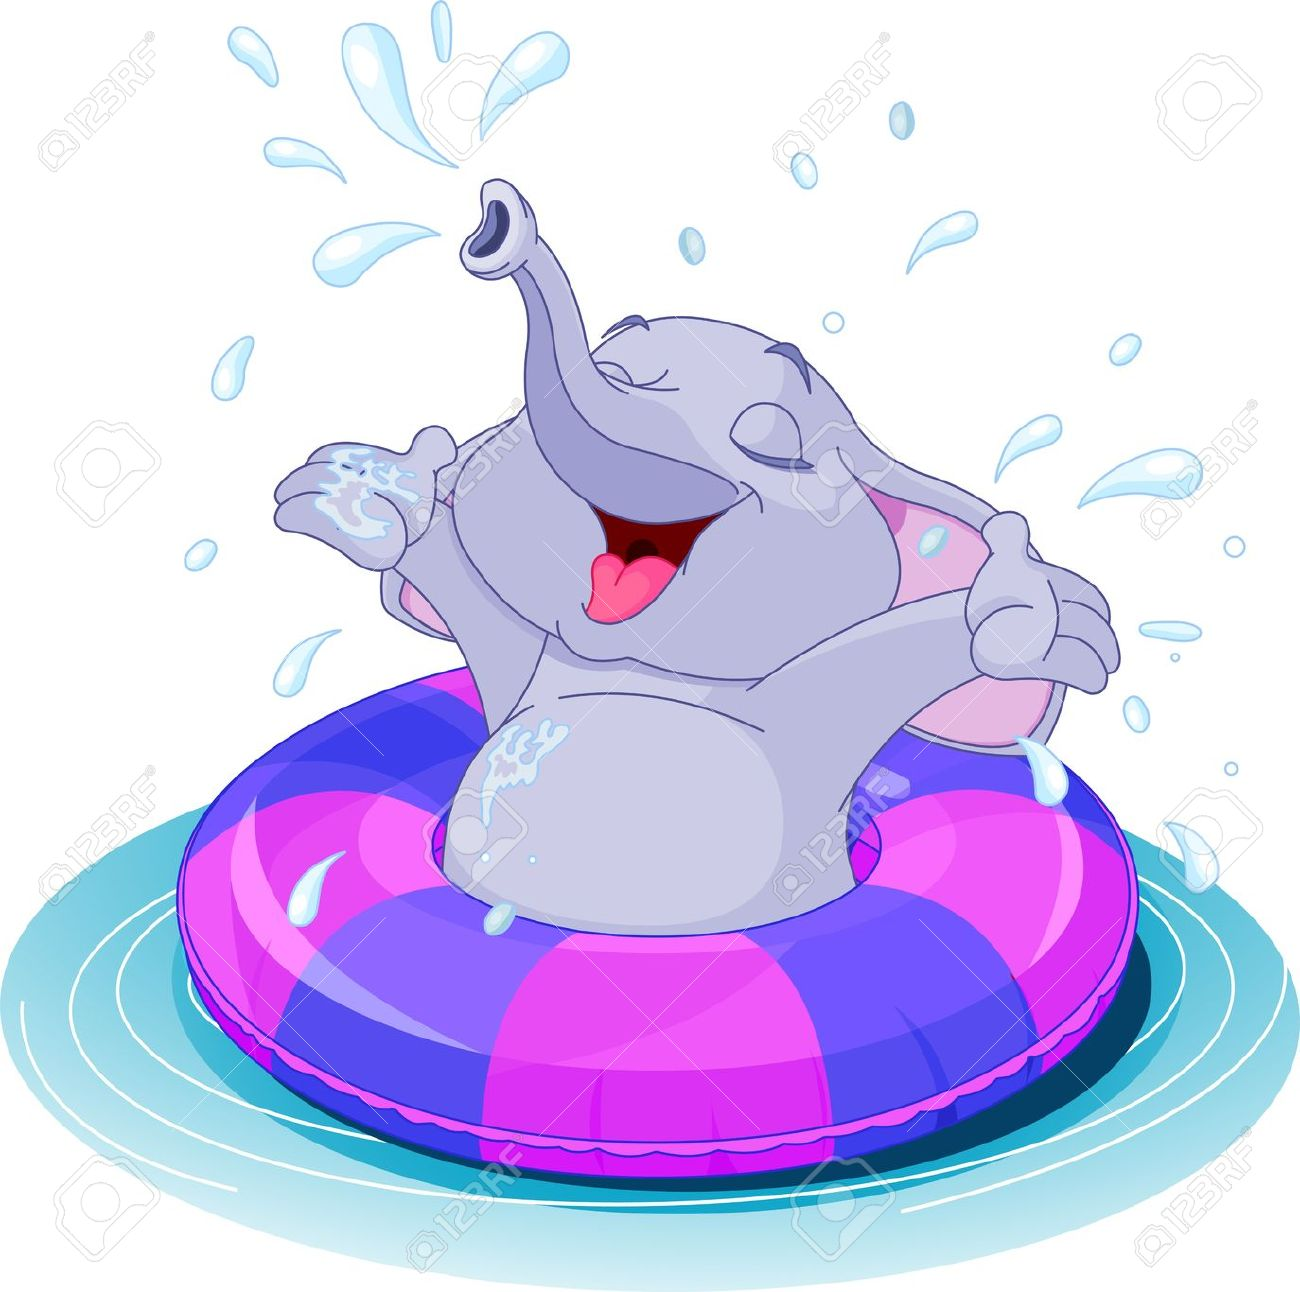 Water elephant clipart - Clipground